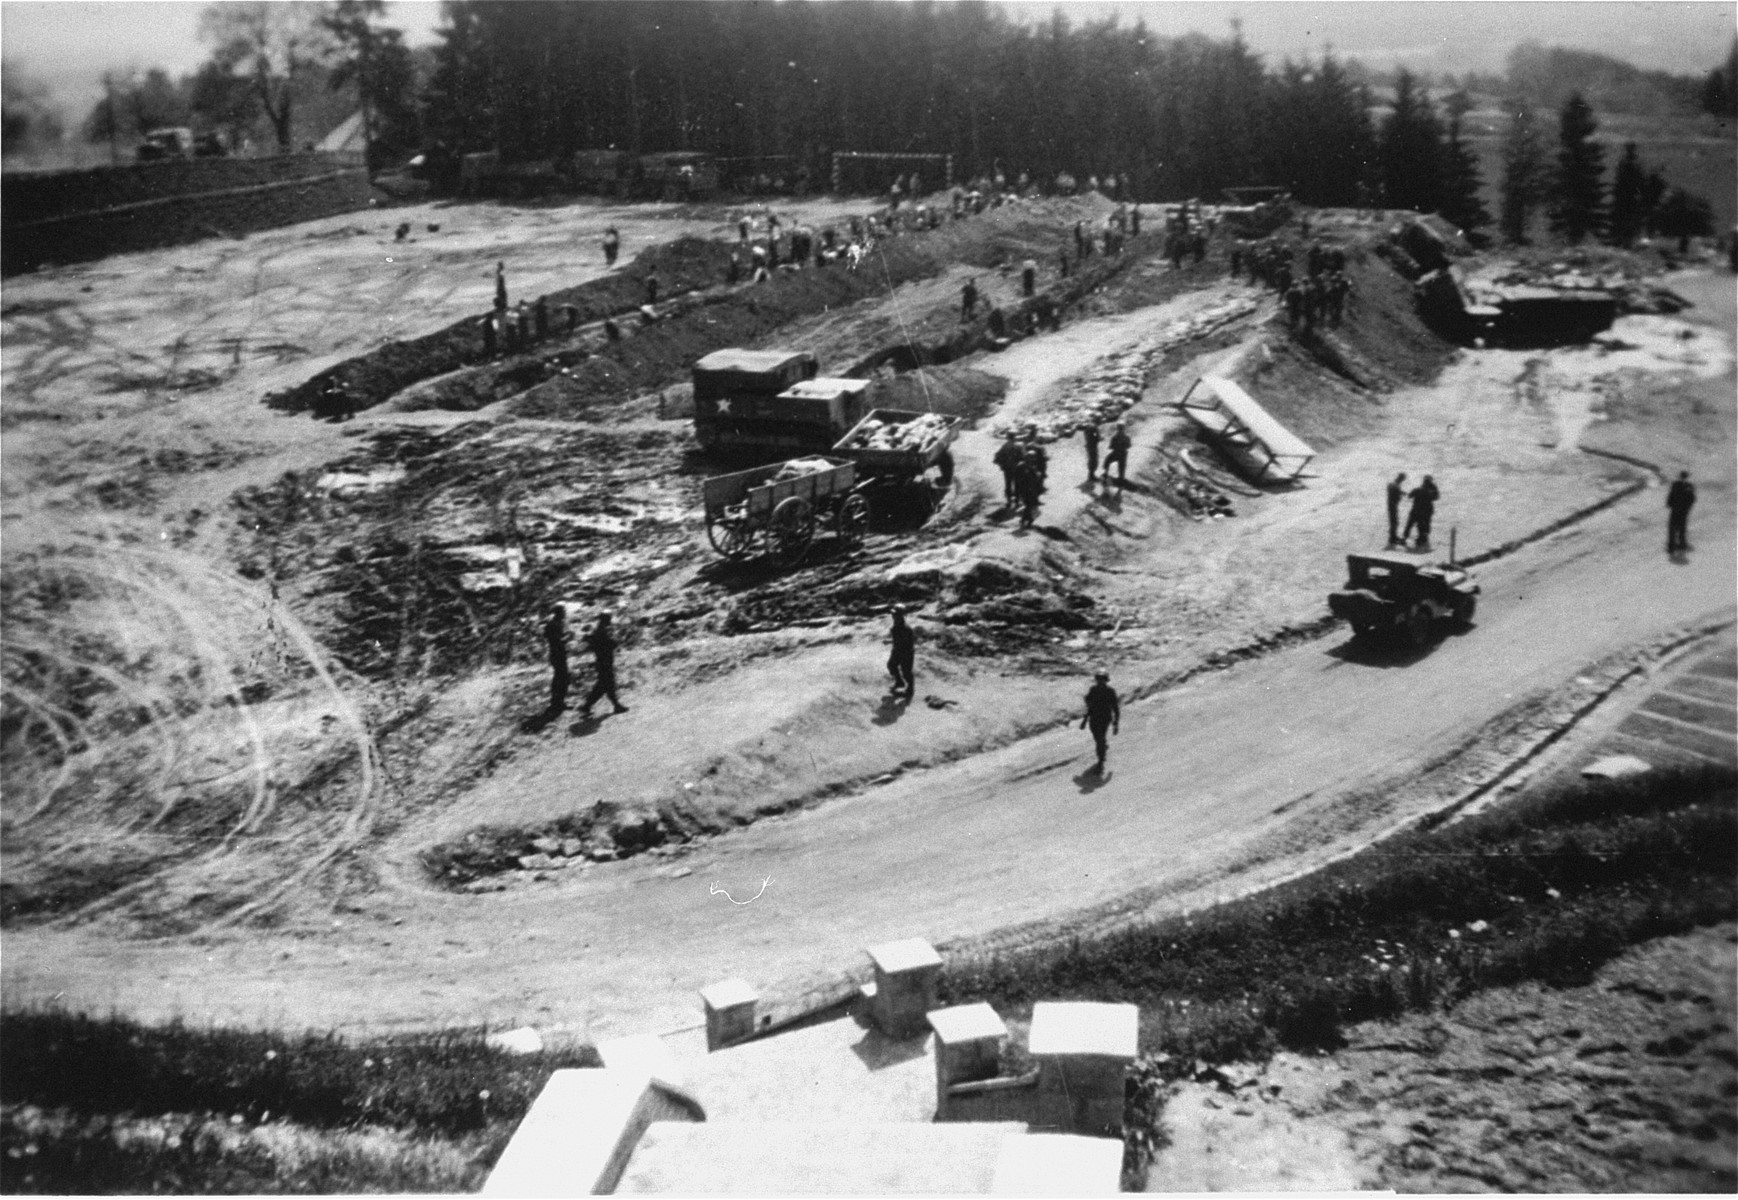 Austrian civilians prepare mass graves to bury the bodies of former concentration camp inmates at Mauthausen.